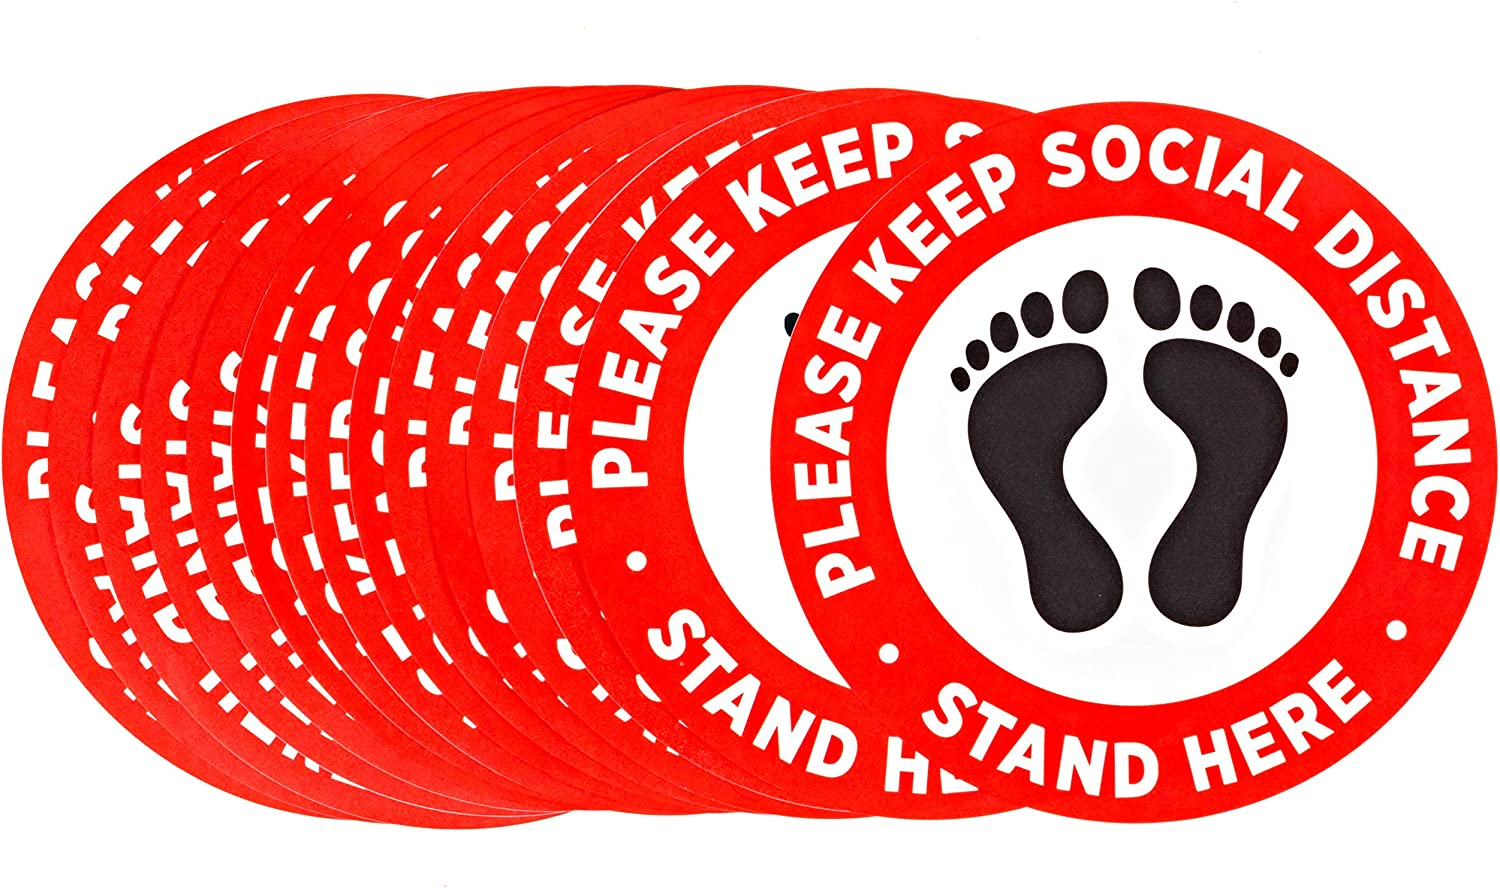 """Social Distancing Floor Decals Stickers - 12"""" Upgraded Safety Signs Supplies - 6 Feet Apart Distance Signage - Removable Vinyl, Anti Slip Waterproof Adhesive - 15 Pack"""